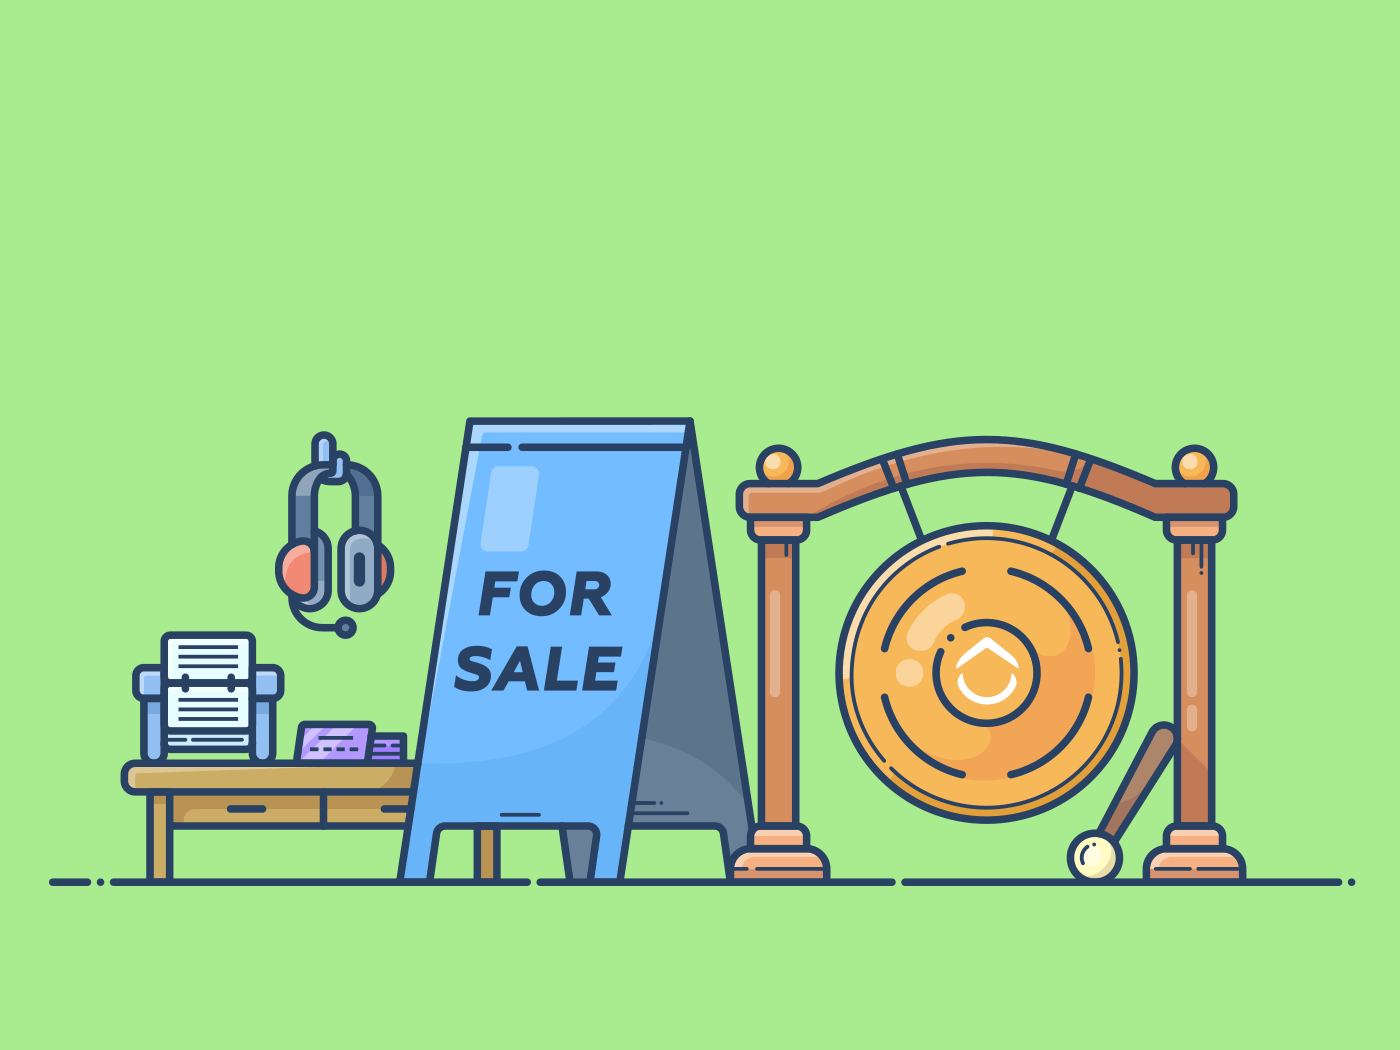 25+ Simple Sales Tools For Small Businesses